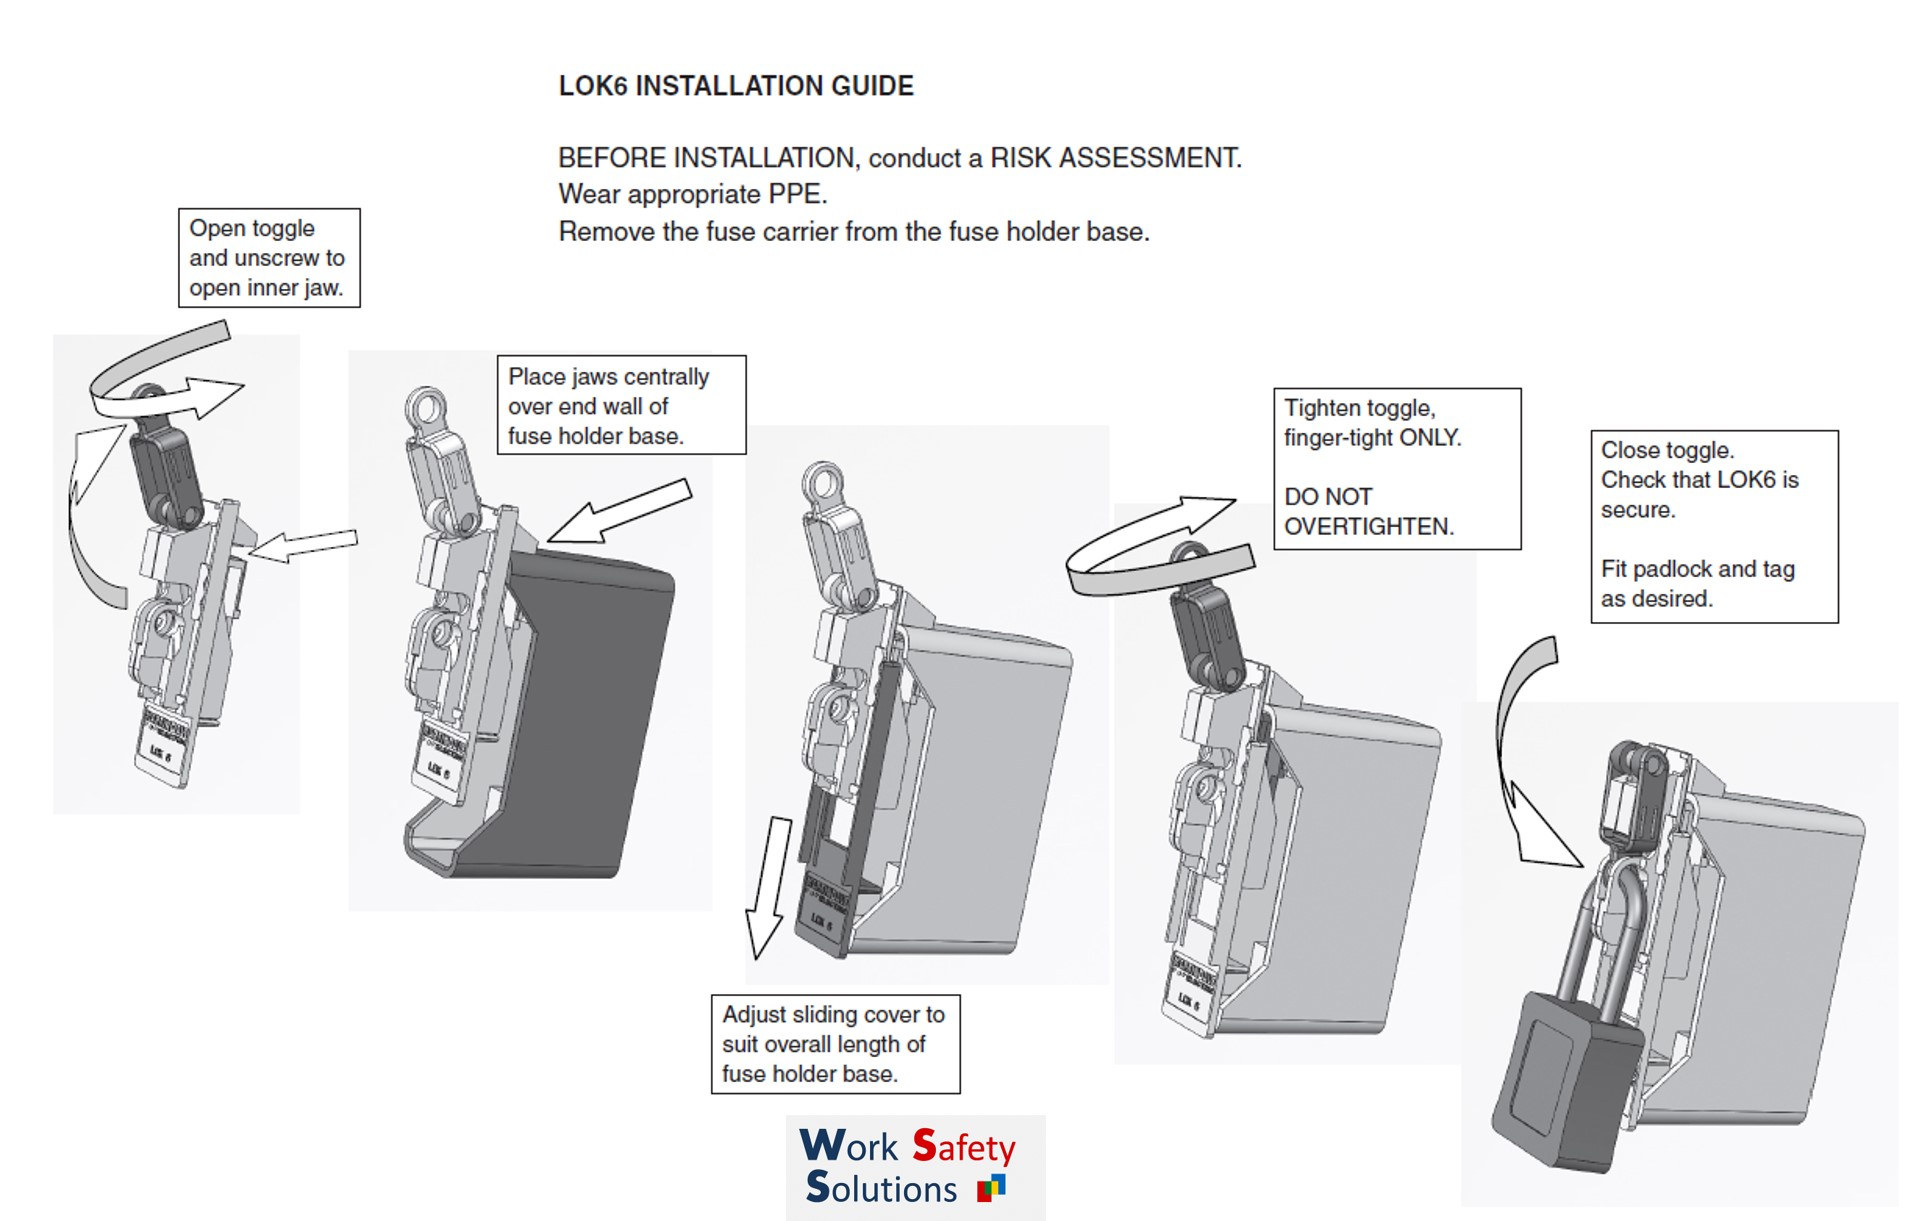 Martindale Lok6 Universal Fuse Carrier Isolation Lock Work The Last Of Us  Box The Lok6 Is A Universal Locking Off Device For Fuse Carriers Designed  To ...